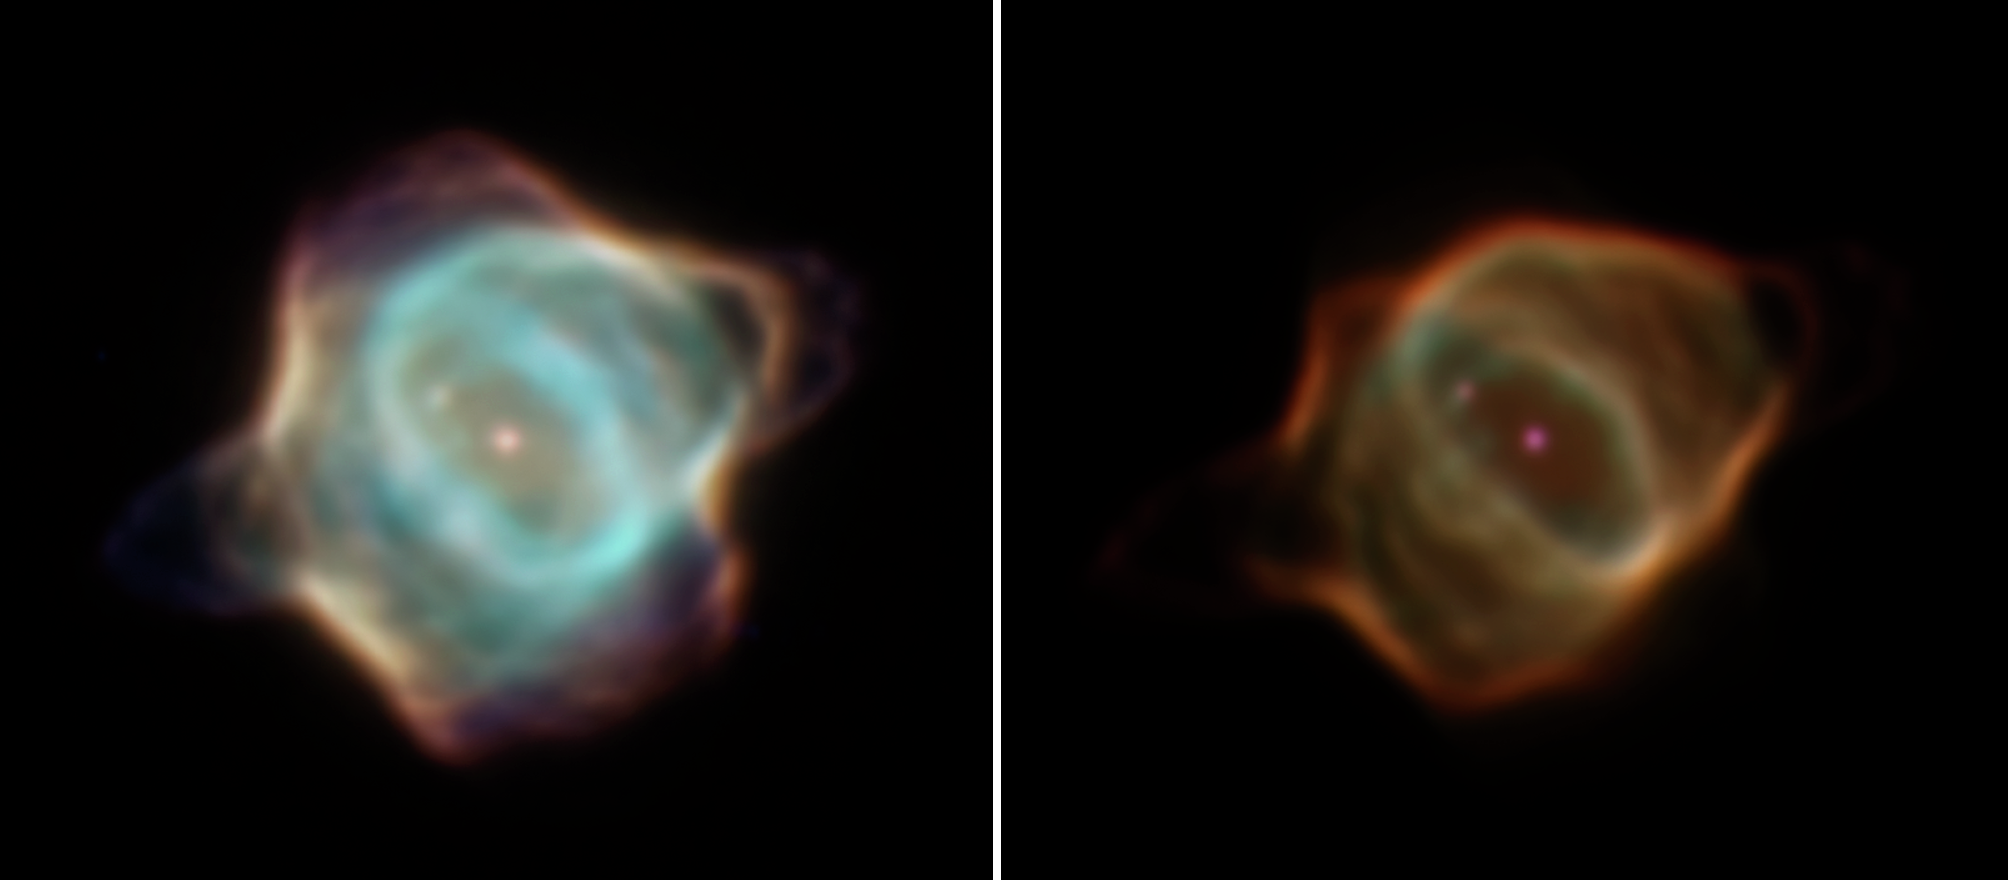 Hubble Space Telescope images of the Stingray Nebula taken 20 years apart